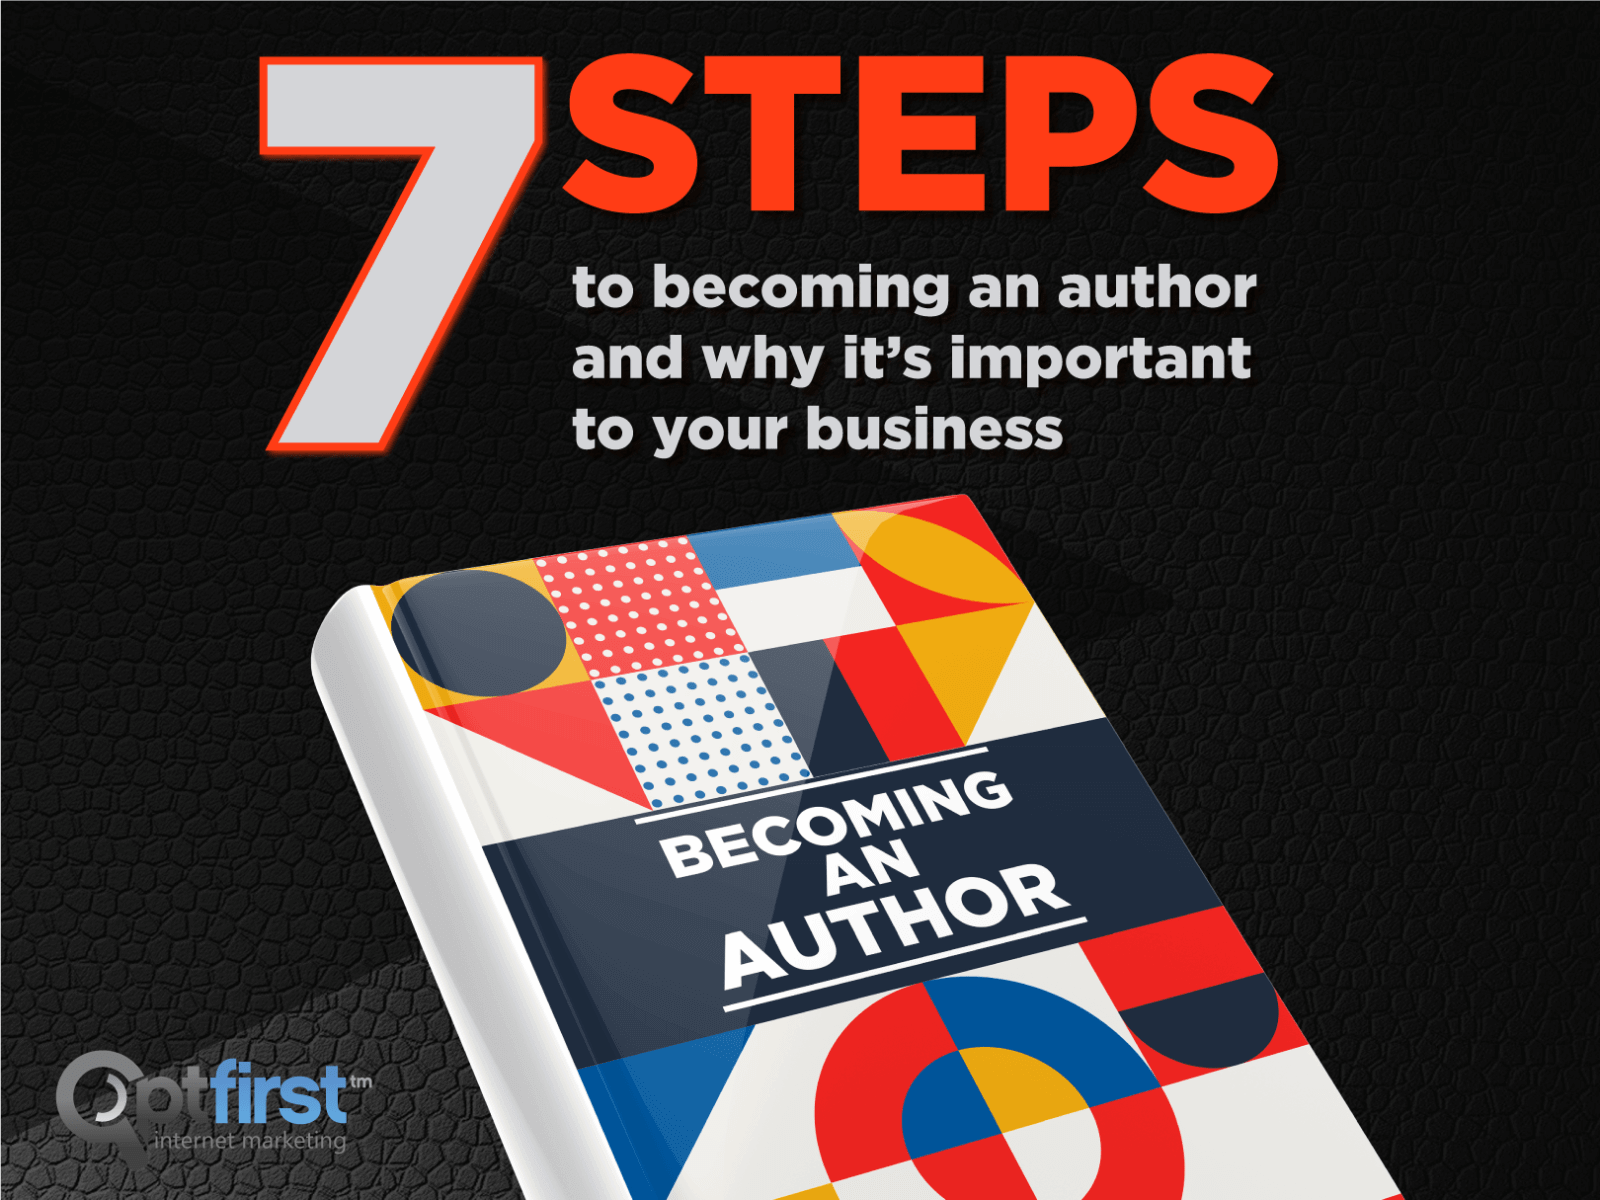 Seven steps to becoming an author and why it's important to your business